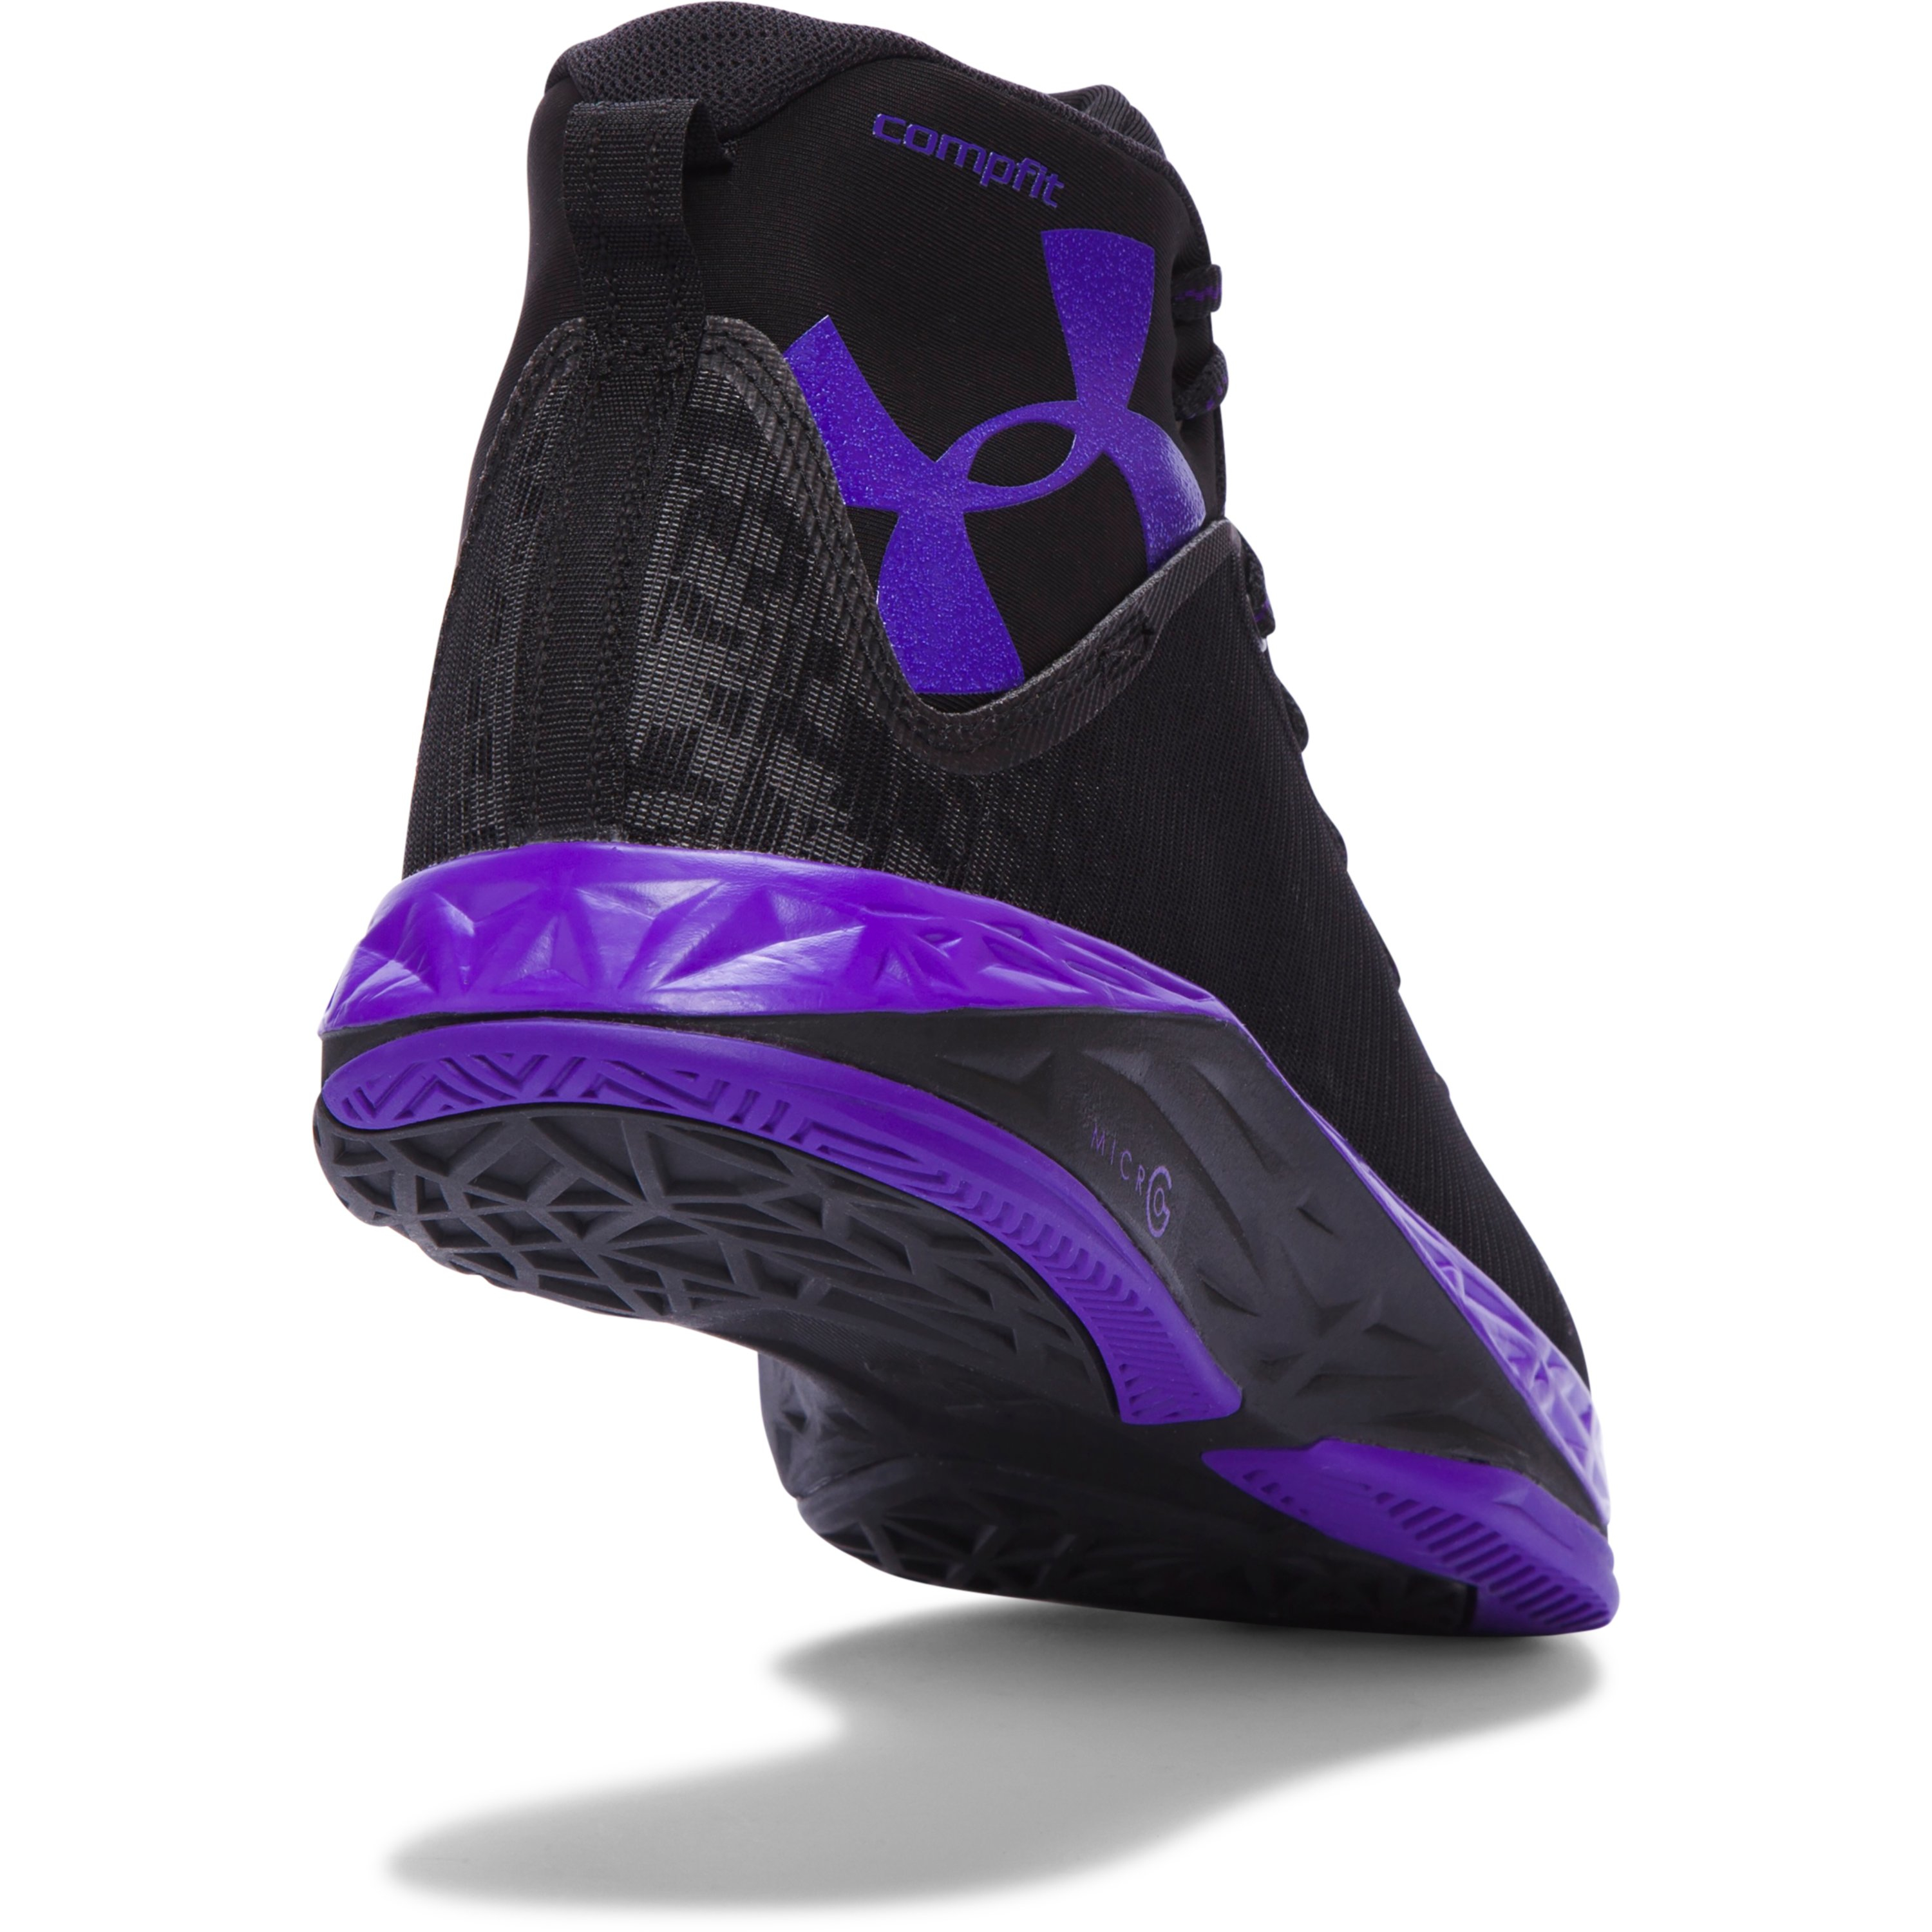 d9c3be5a834c Under Armour Men s Ua Fireshot Basketball Shoes in Purple for Men - Lyst